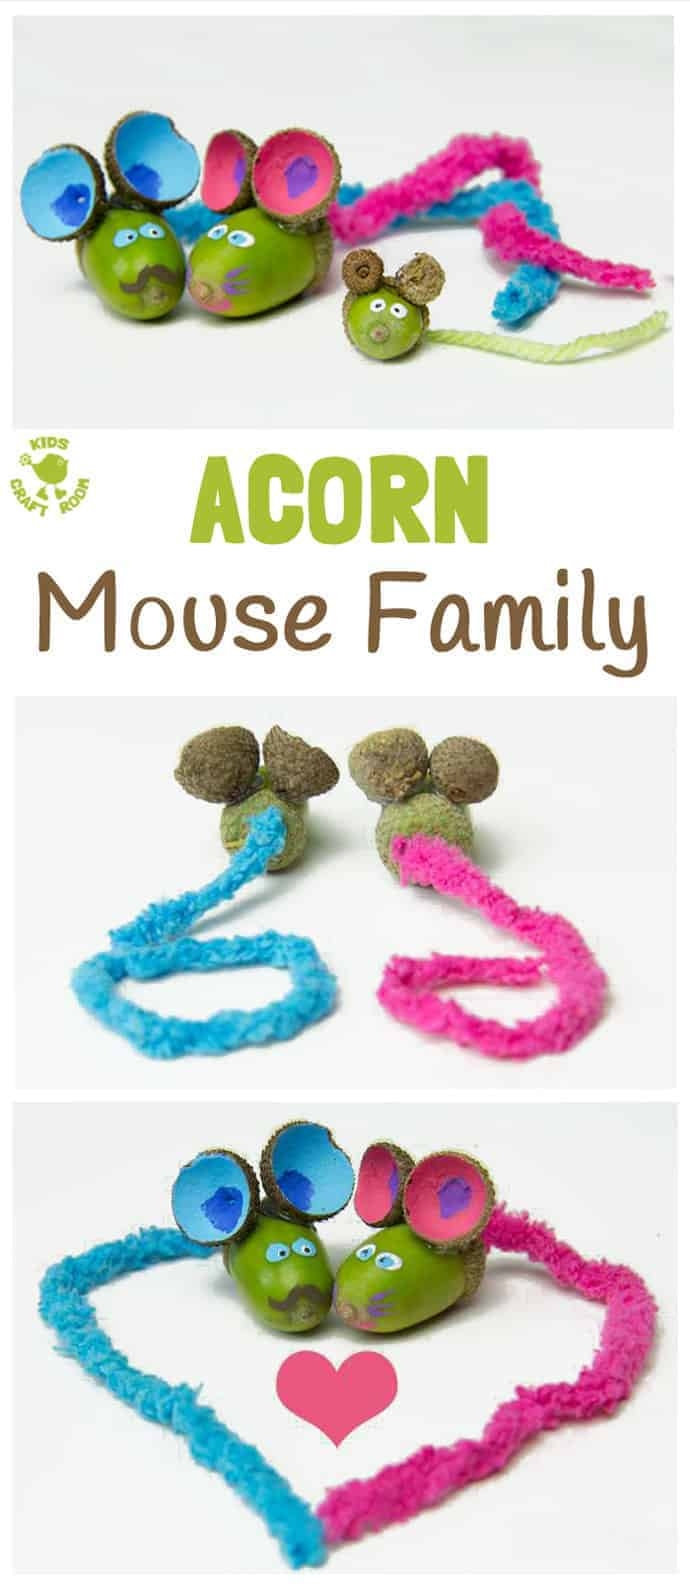 ACORN MOUSE CRAFT -We love these adorable ACORN MICE, such a cute Nature craft for Fall. Autumn crafts and acorn crafts for kids are such fun. Squeak!